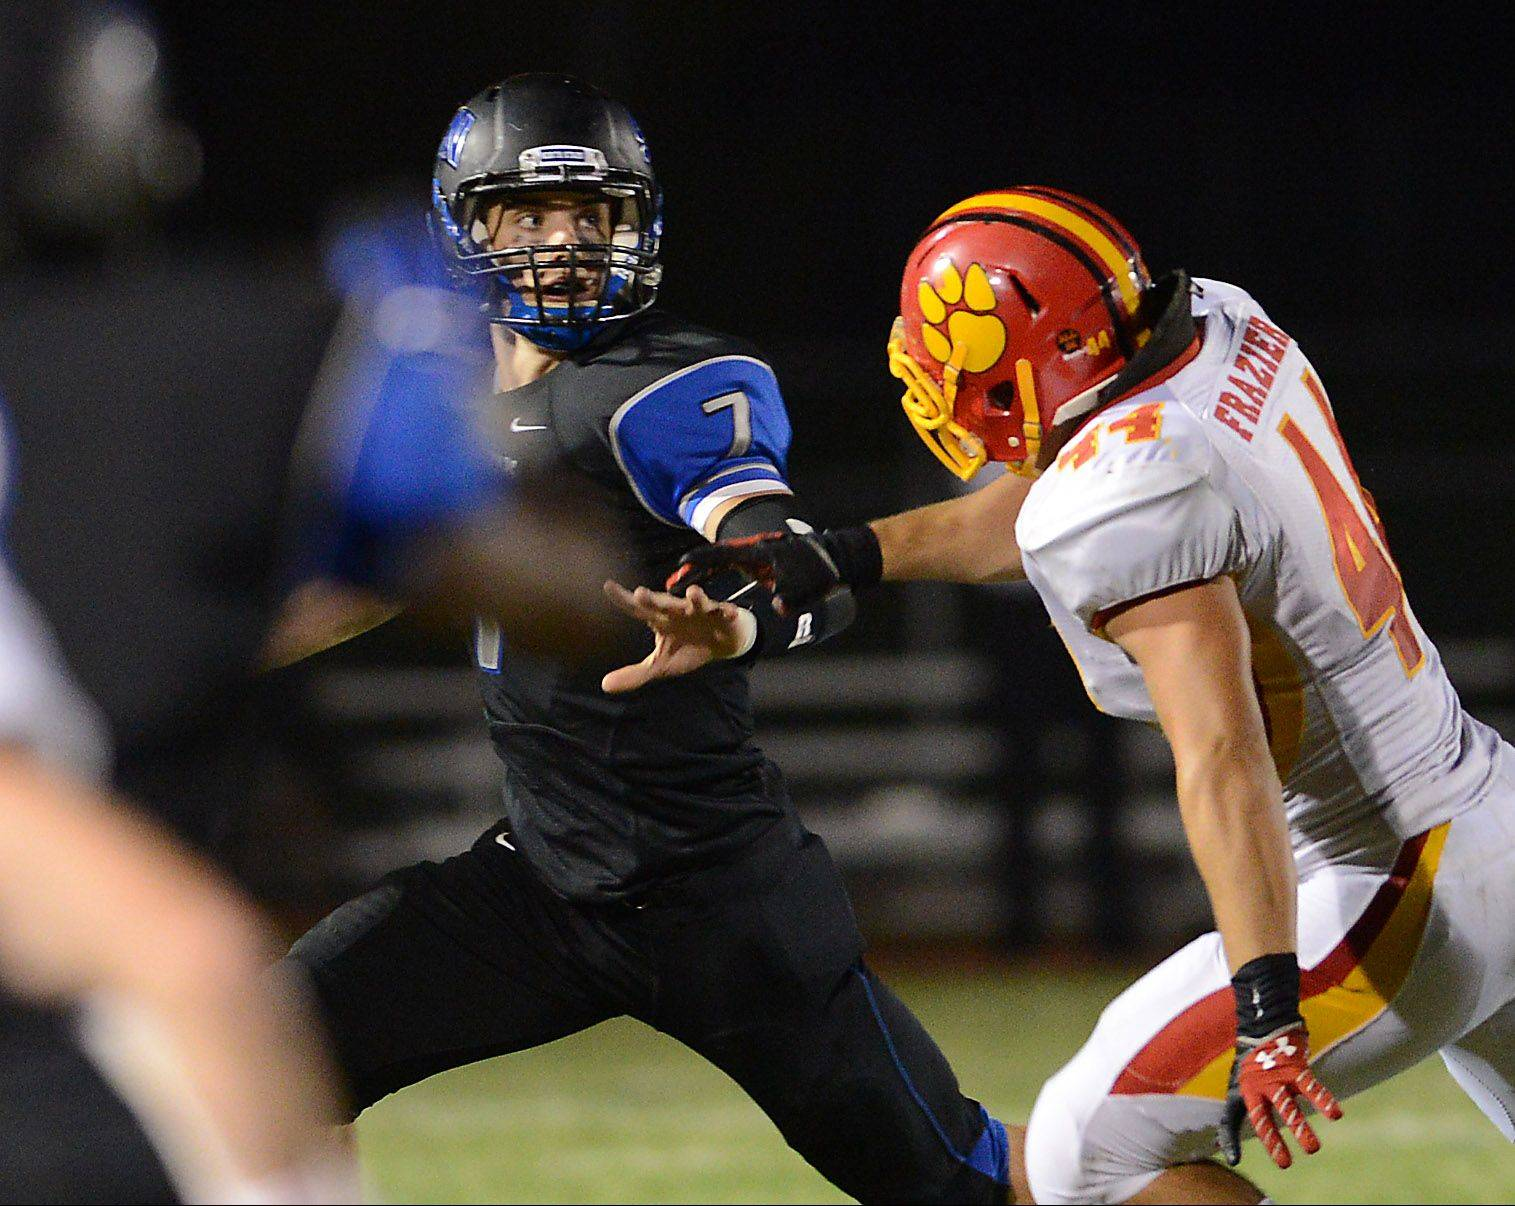 Batavia's Noah Frazier pressures St. Charles North quarterback Erik Miller during the Bulldogs' 44-7 win last Friday. Batavia's victory clinched its 10th playoff berth in the last 11 years while the North Stars need to win their final two games to become playoff eligible.